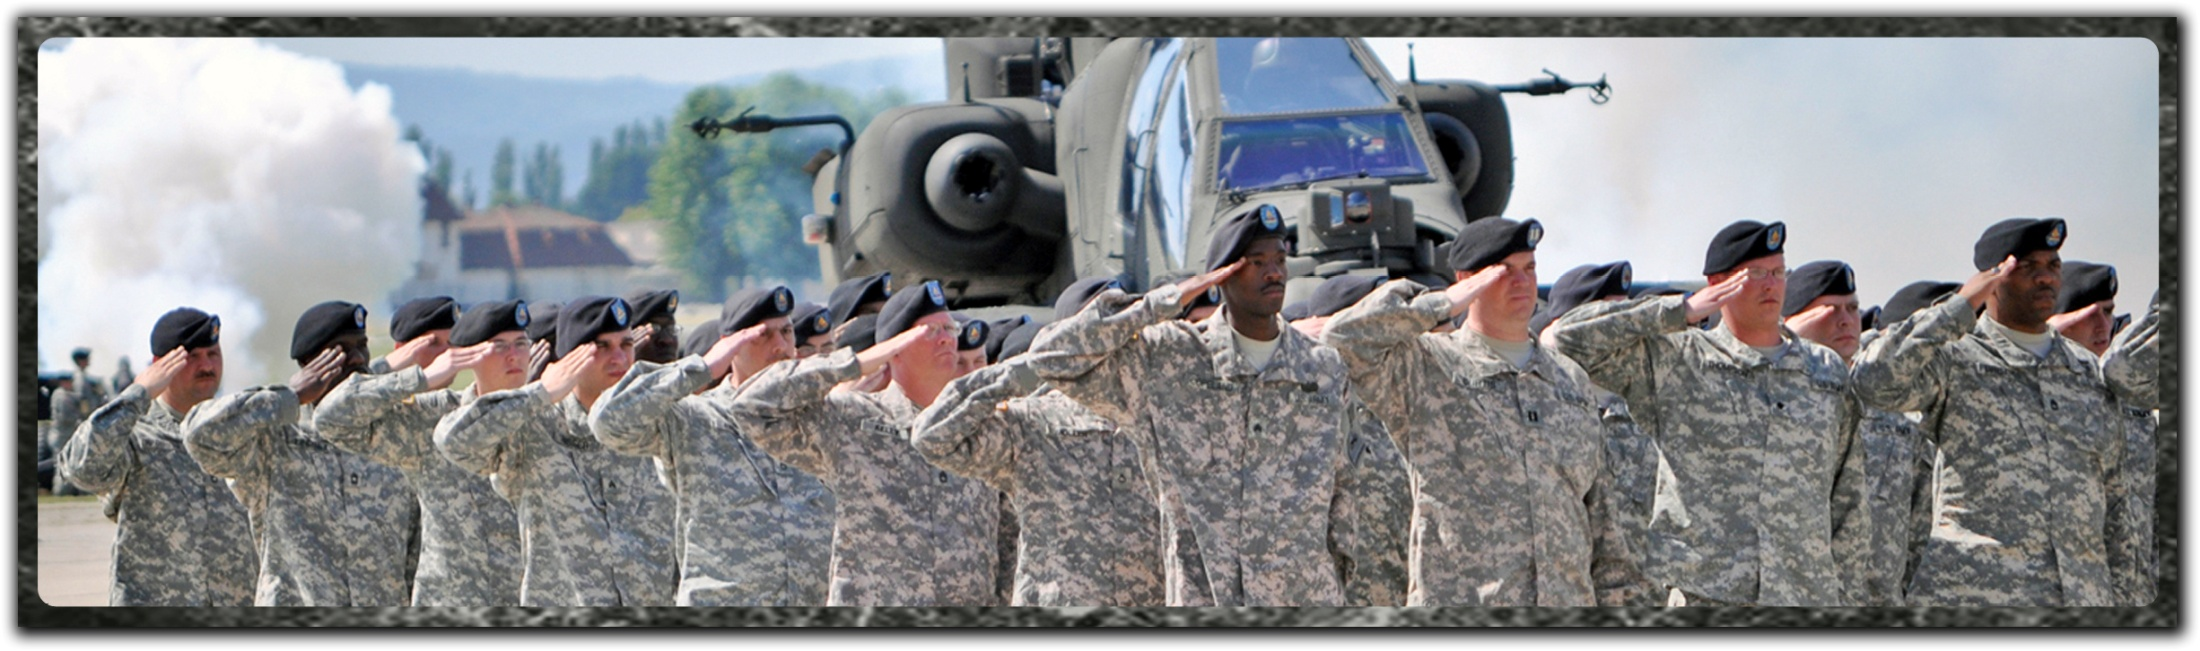 U.S. Army Premier all Volunteer Force Soldiers Exhibiting Character, Competence and Commitment A Globally